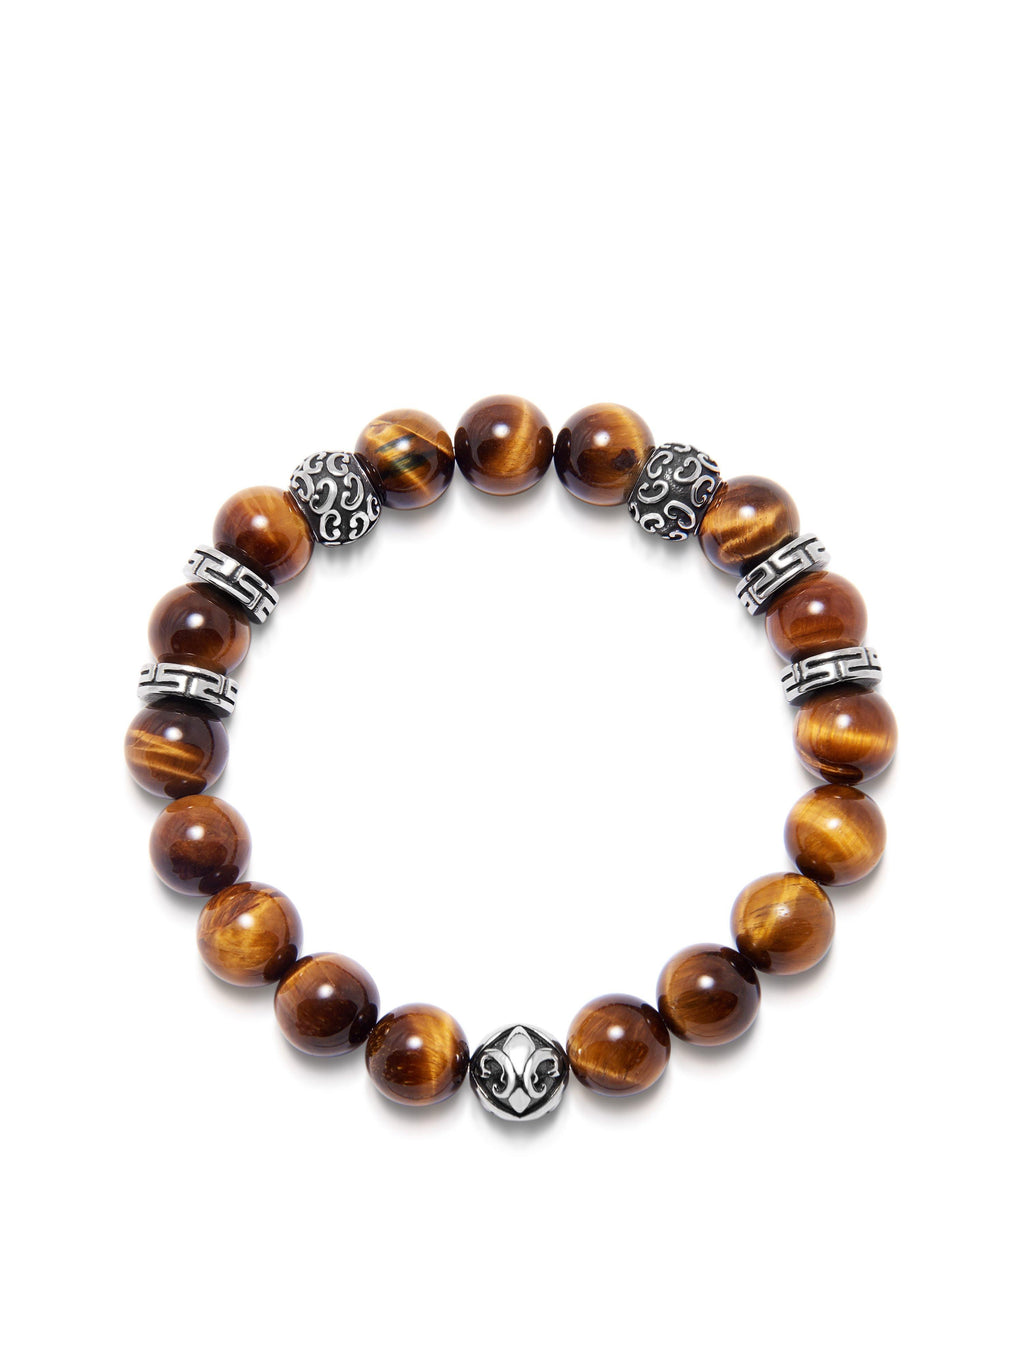 Men's Wristband with 10MM Tiger Eye and Silver